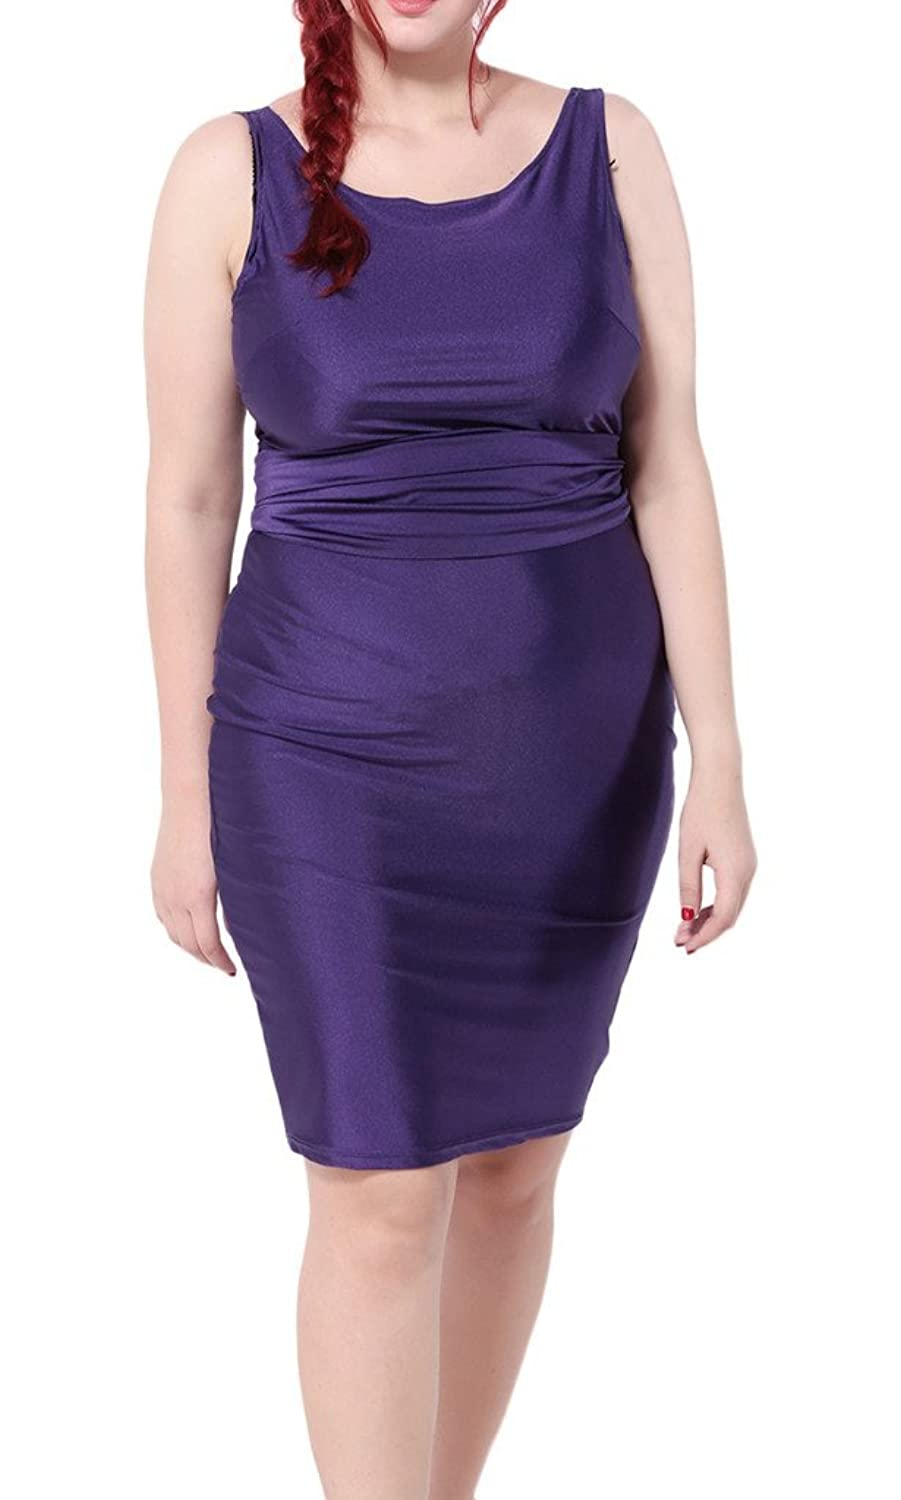 Bigood Plus Size Sexy Ruckenfrei Damen Ohne Armel Knielanges Kleid Party Kleid Violett